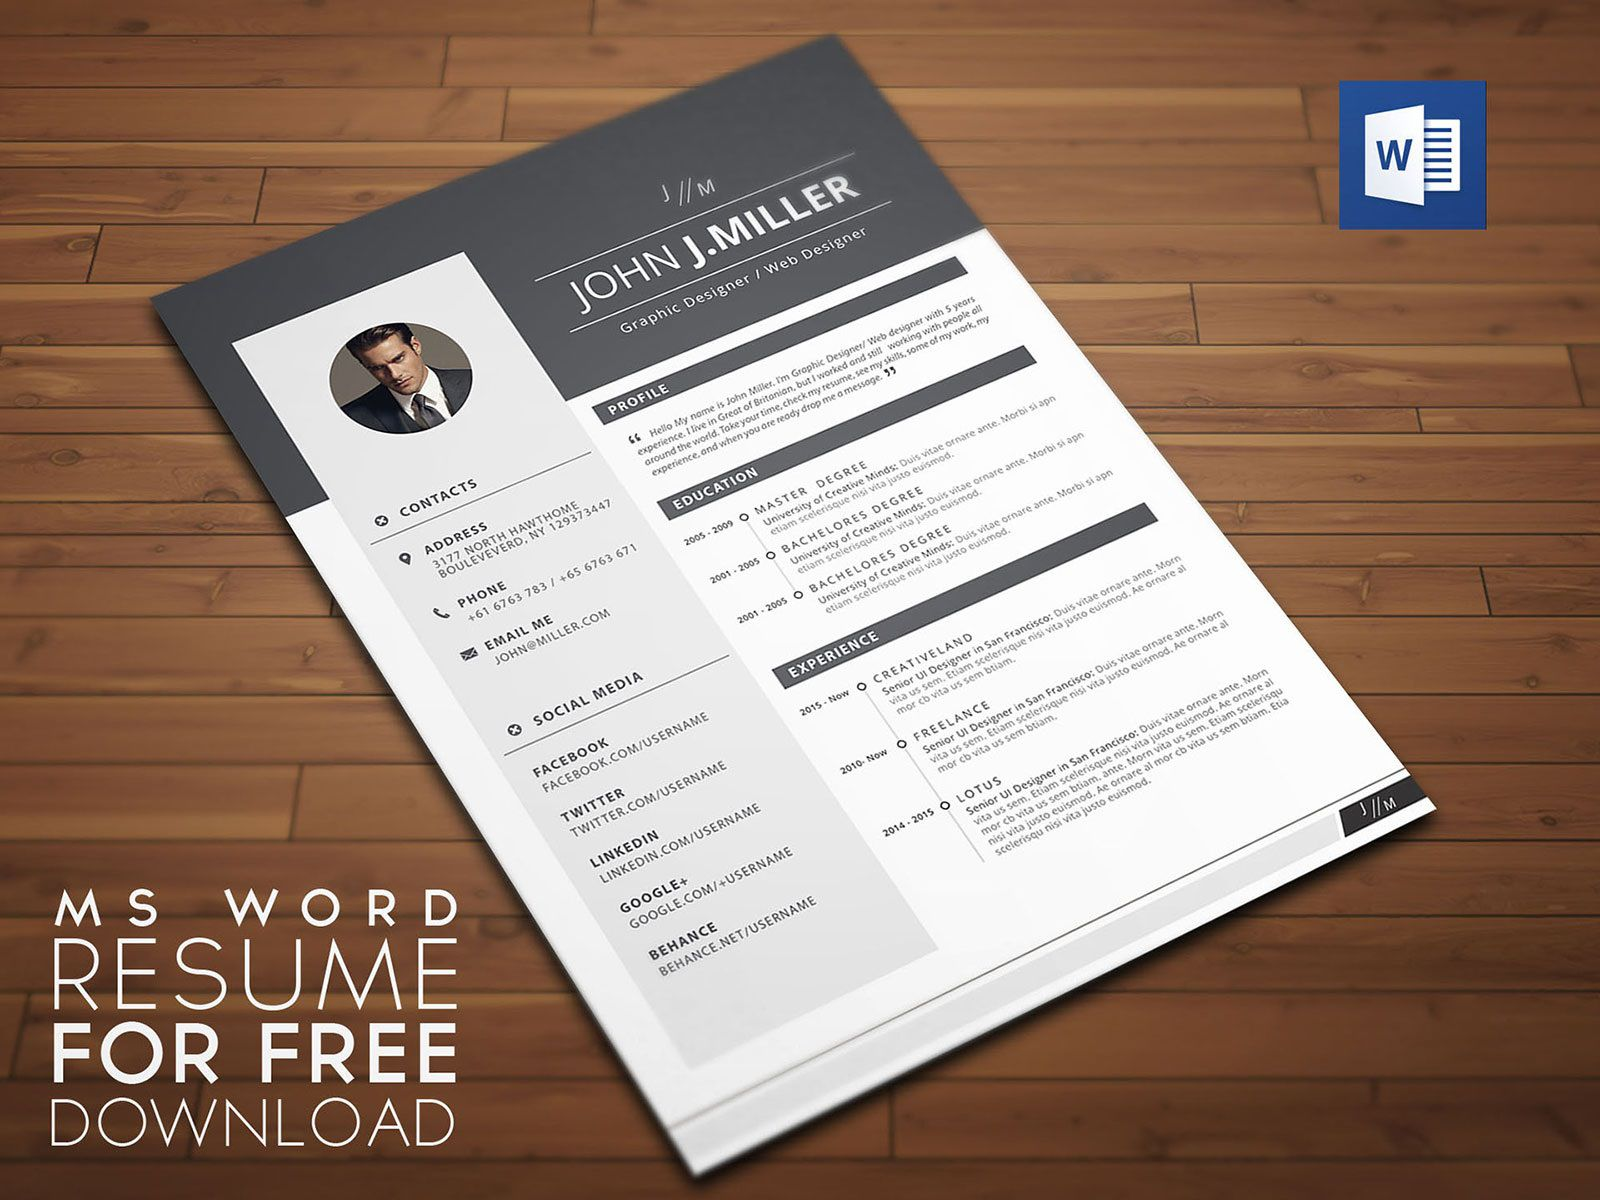 005 Unusual M Word Template Download Photo  Ms Microsoft Checklist Free Certificate CrosswordFull